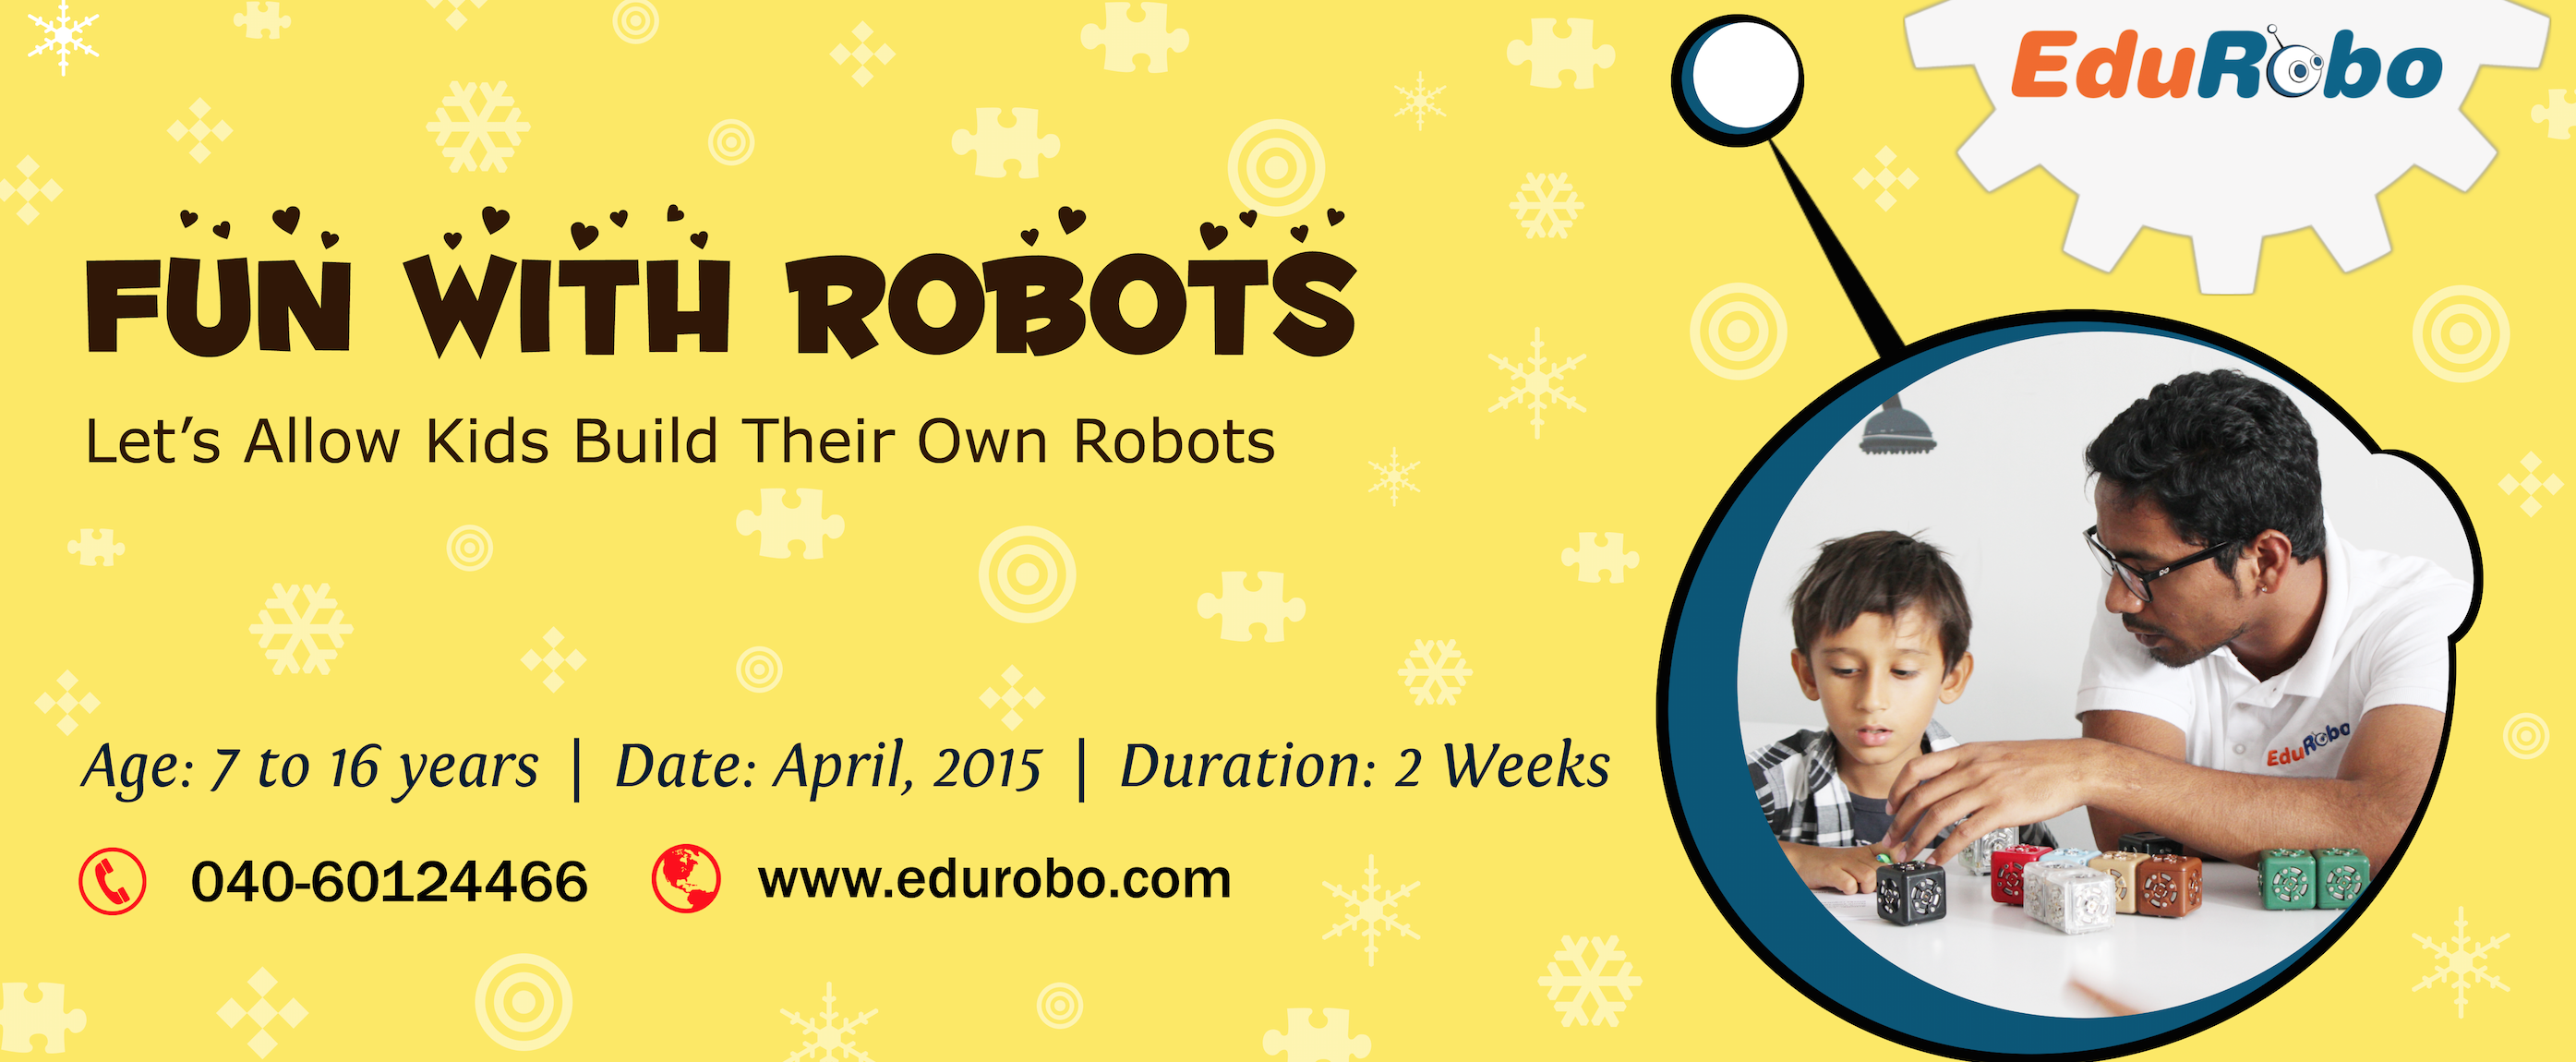 Fun with Robots - Summer Camp